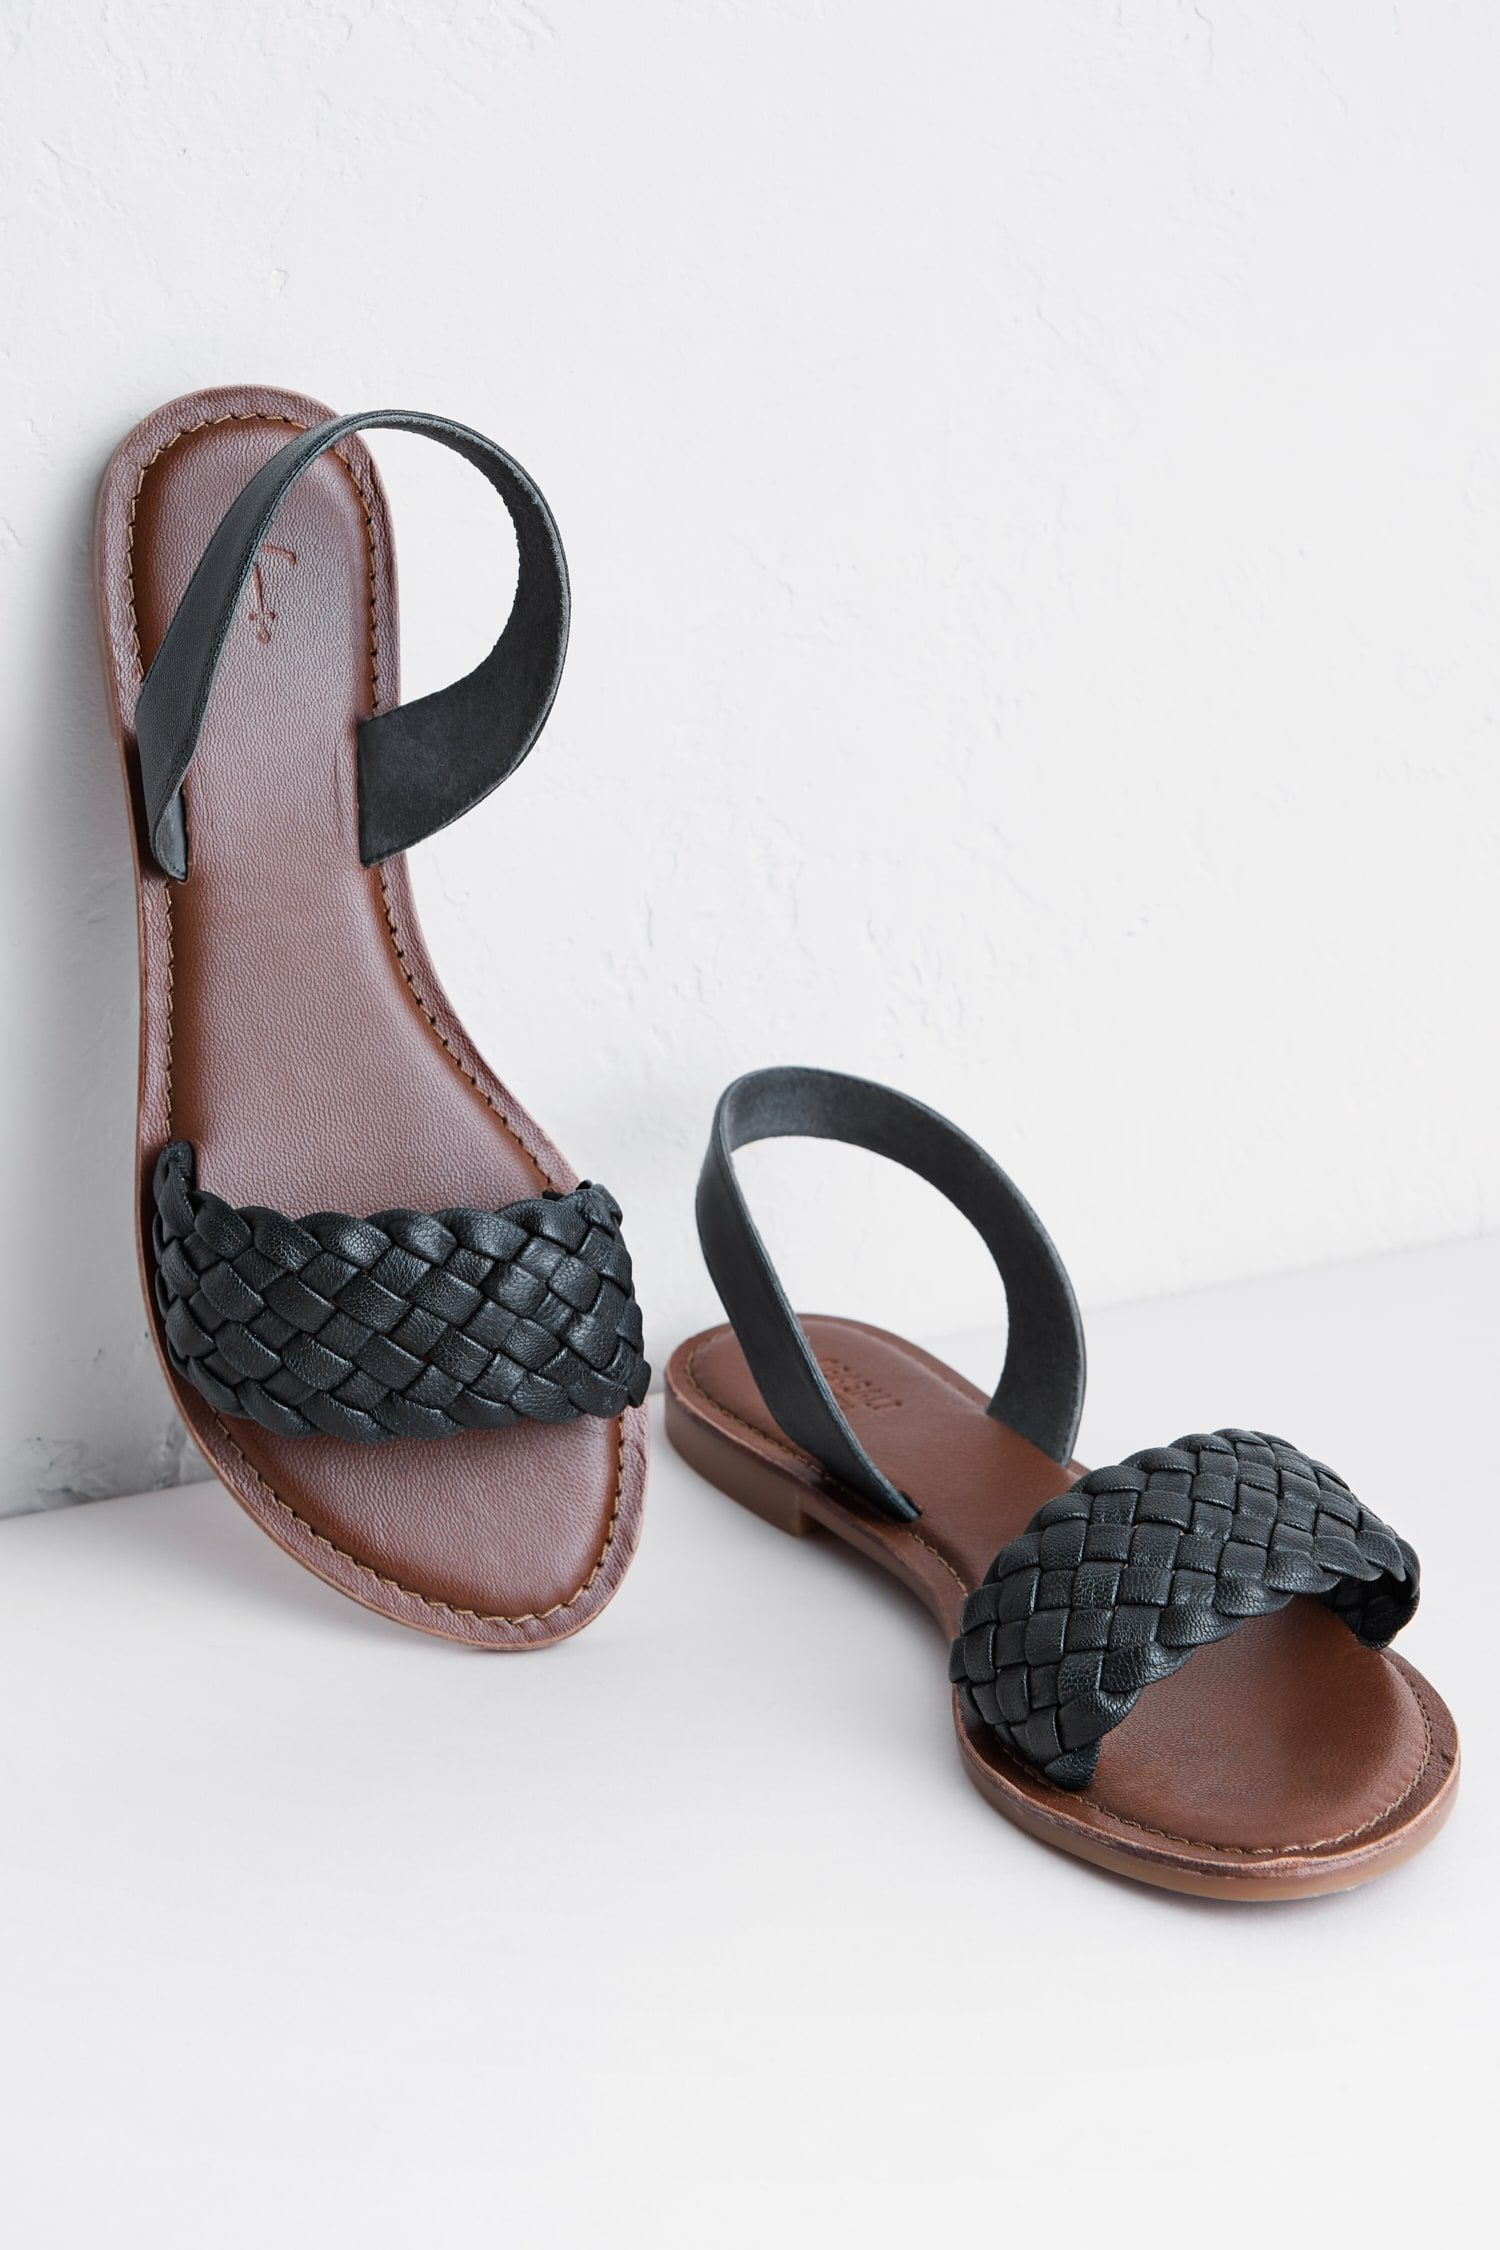 e06f71d3cbe8 You can t beat a pair of leather sandals for summer. The simple